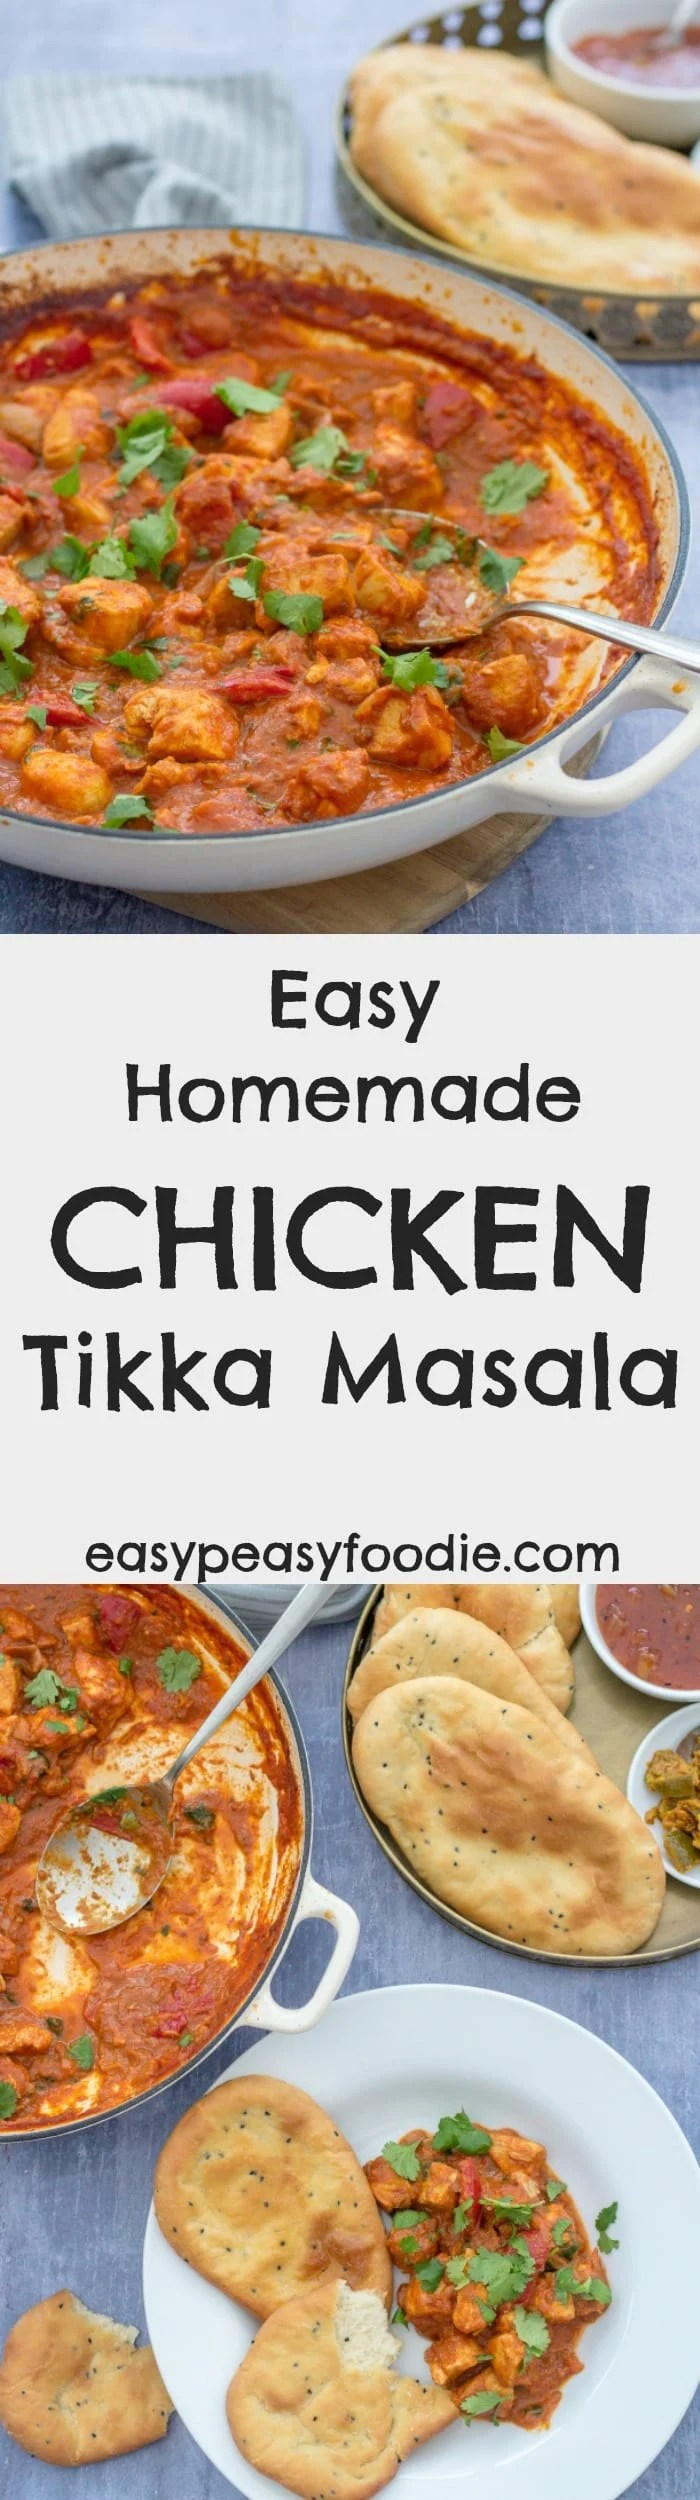 A super quick and simple version of the curry house favourite, my Easy Homemade Chicken Tikka Masala is perfect for busy weeknights when you really want a curry but without the expense of a takeaway (and it's healthier too!) #chicken #tikkamasala #chickentikkamasala #chickntikka #chickencurry #curry #glutenfree #dairyfree #healthydinners #easydinners #midweekmeals #familydinners #easypeasyfoodie #FreeFromGang #CookBlogShare